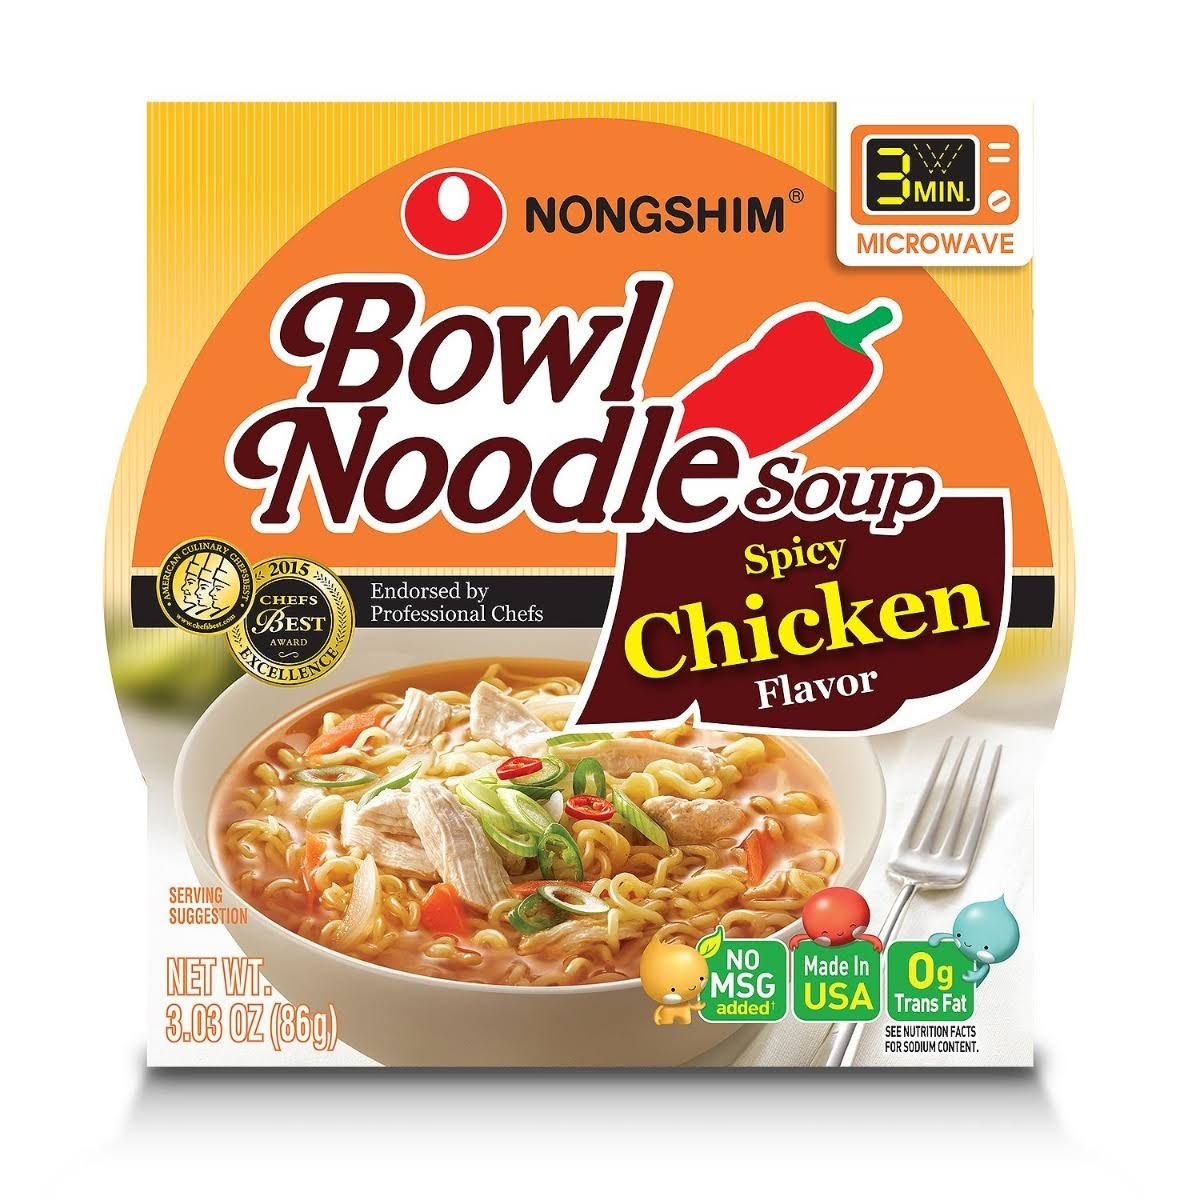 Nongshim Bowl Noodle Soup - Spicy Chicken, 3.03oz